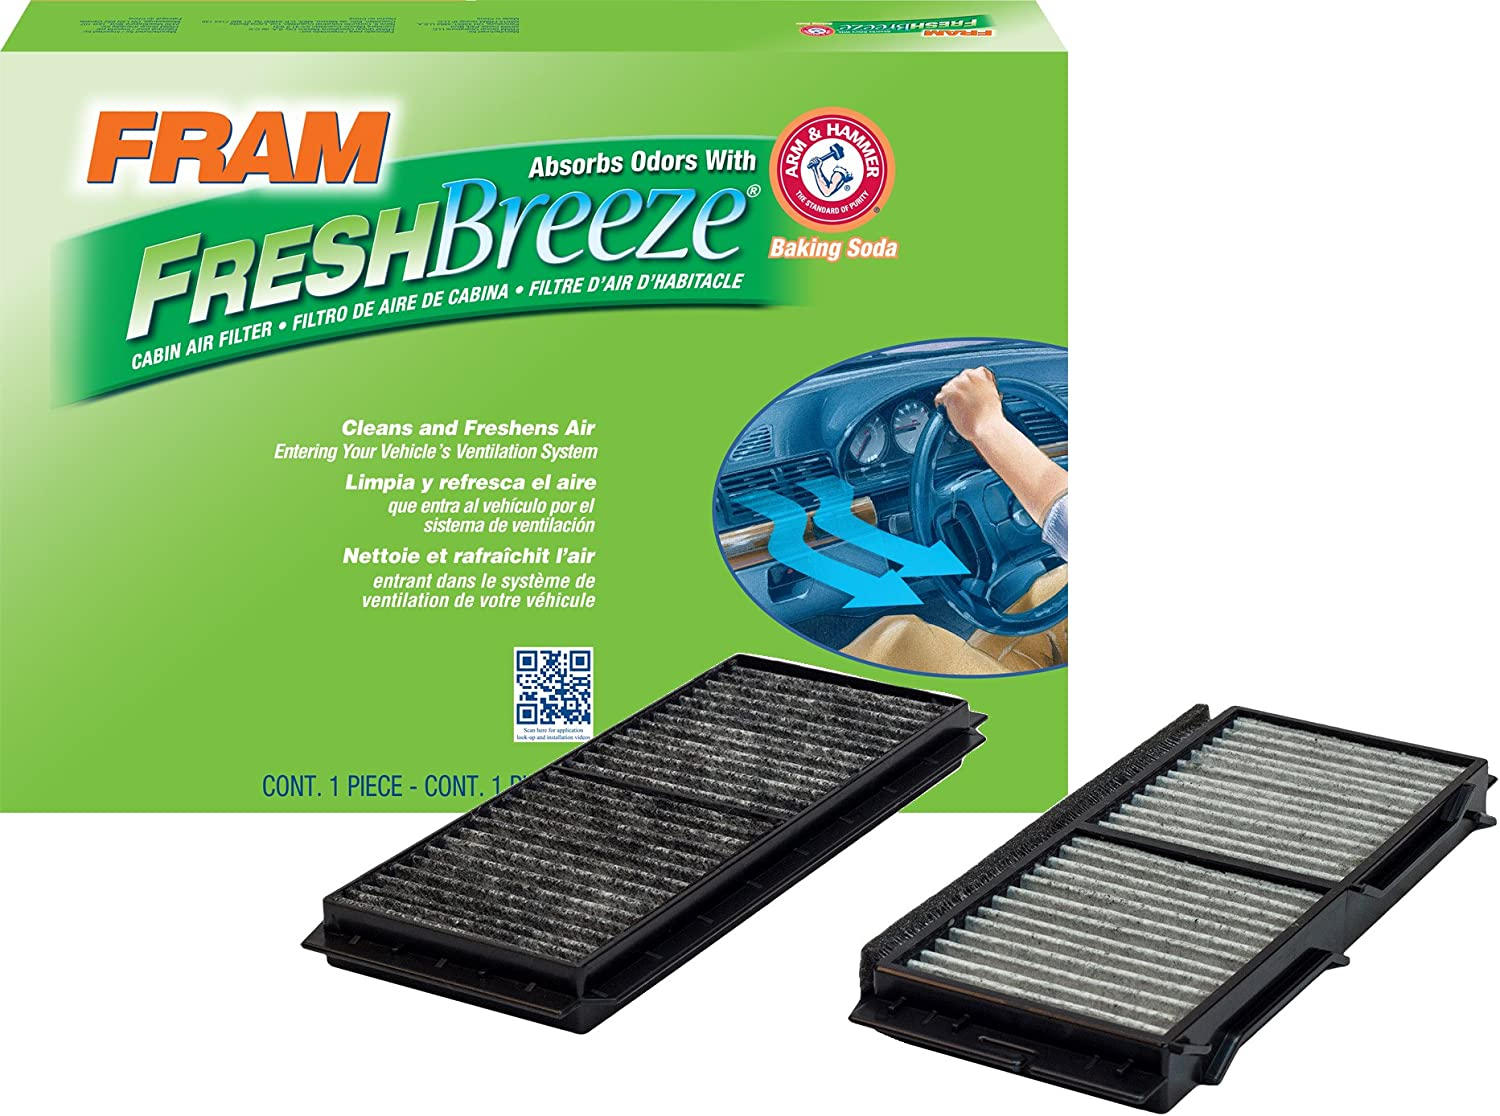 FRAM CF11672 Fresh Breeze Cabin Air Filter with Arm & Hammer